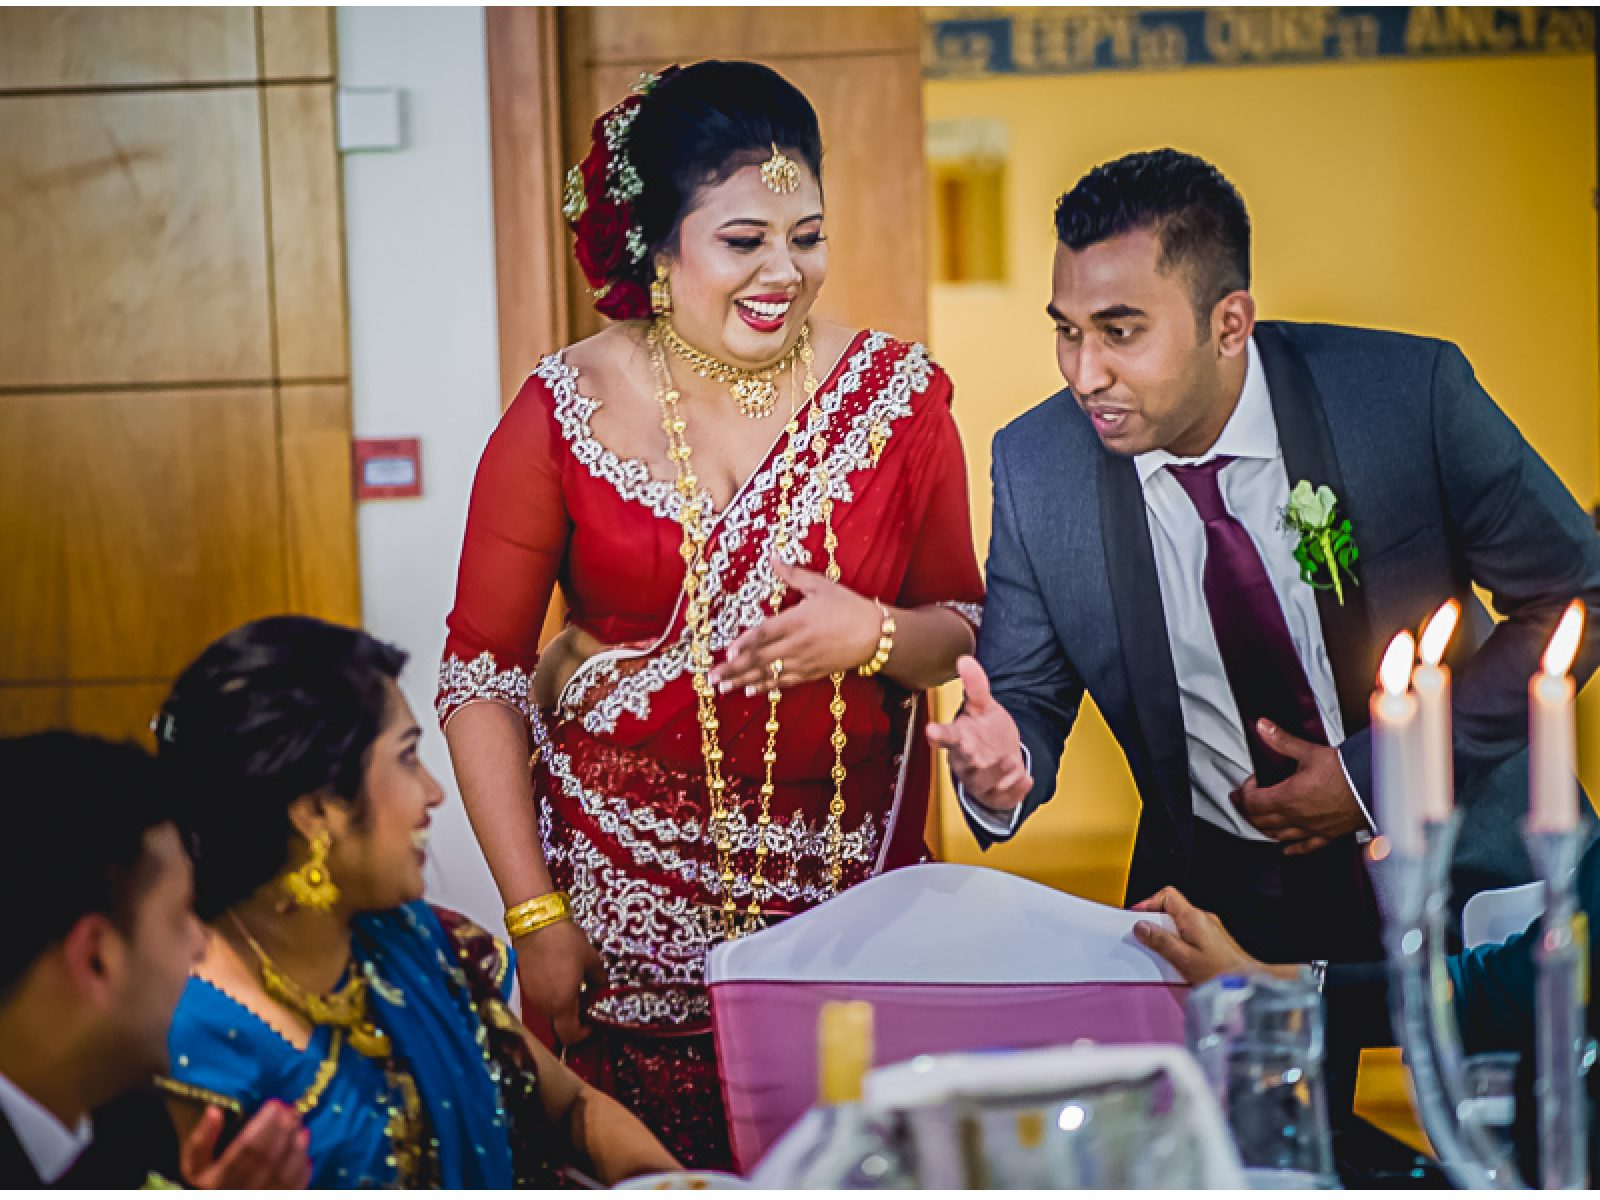 72 1600x1200 - Darshani and Anthony - wedding photographer in London